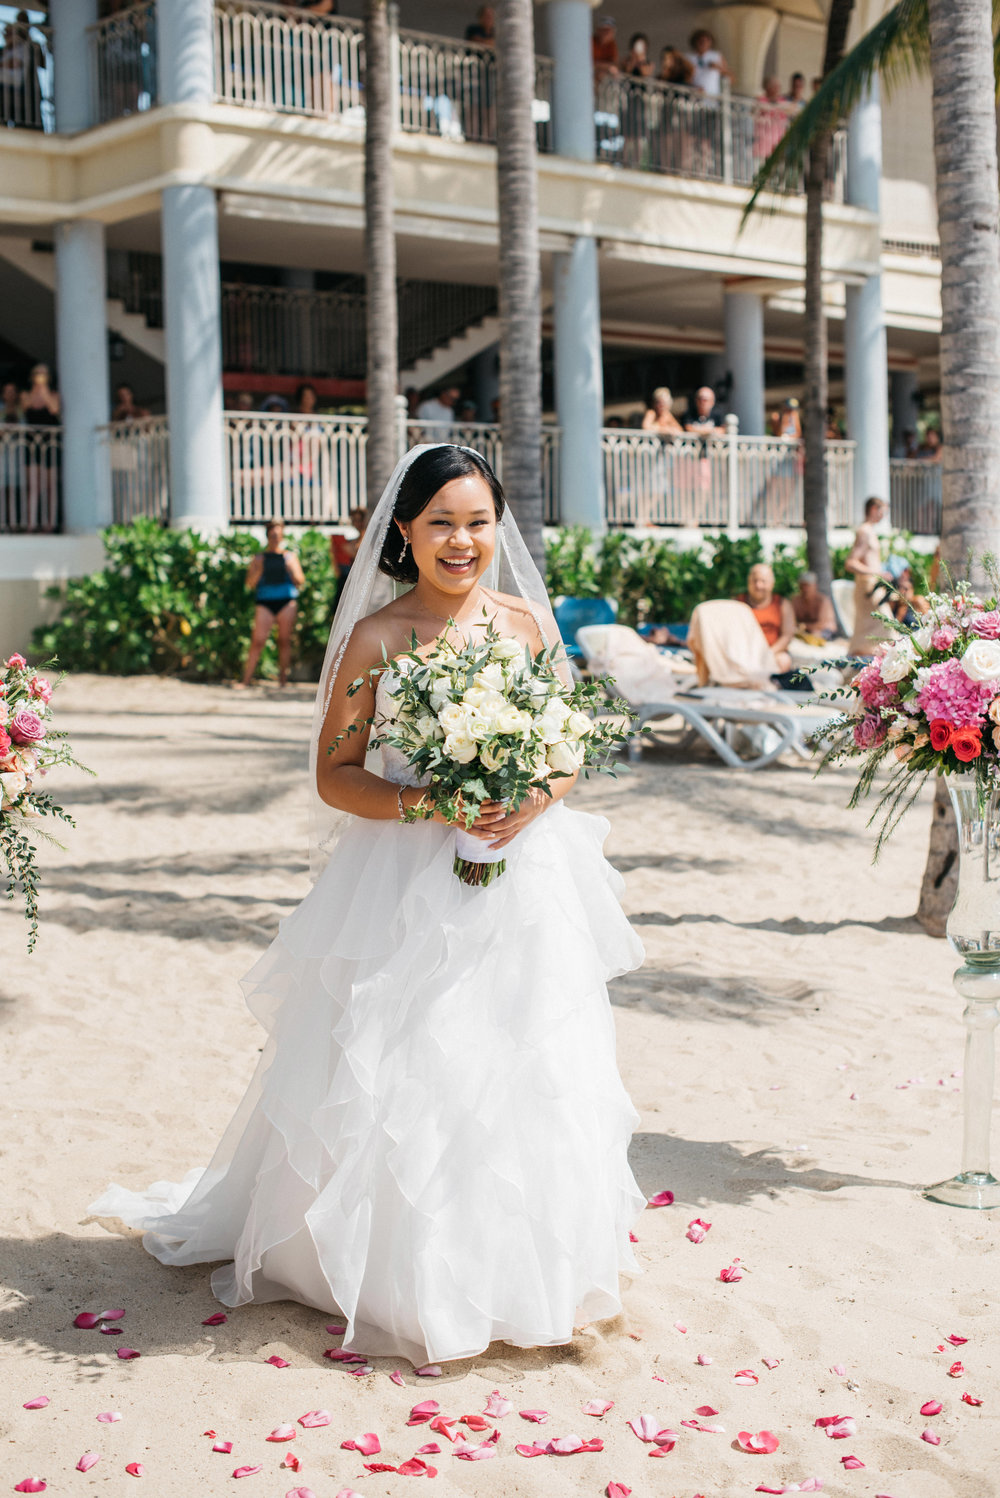 Riu vallarta wedding